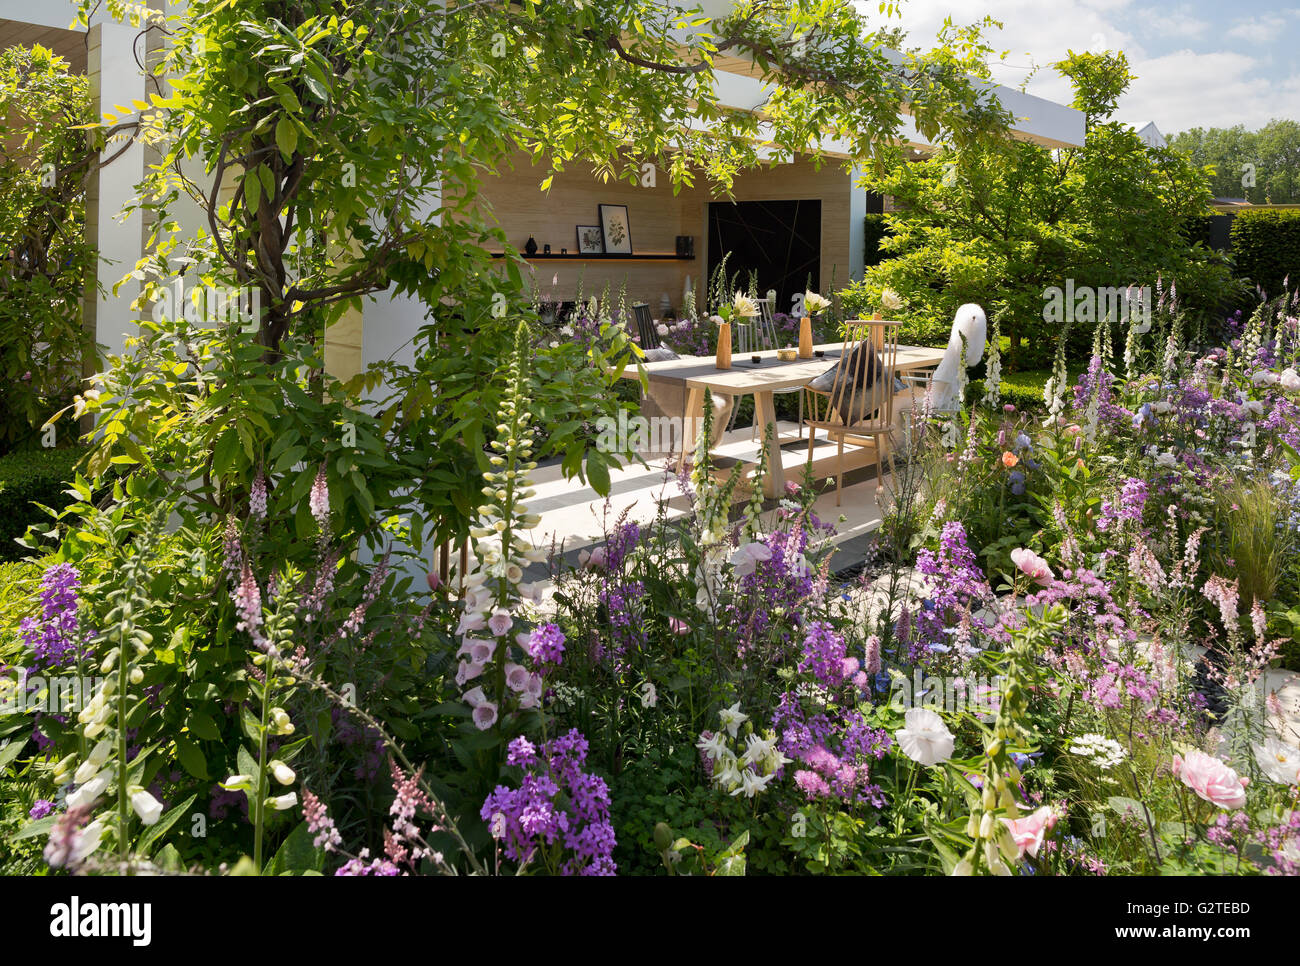 Rhs chelsea flower show 2016 the lg smart garden silver gilt medal stock photo 105029665 alamy - Chelsea flower show gold medal winners ...